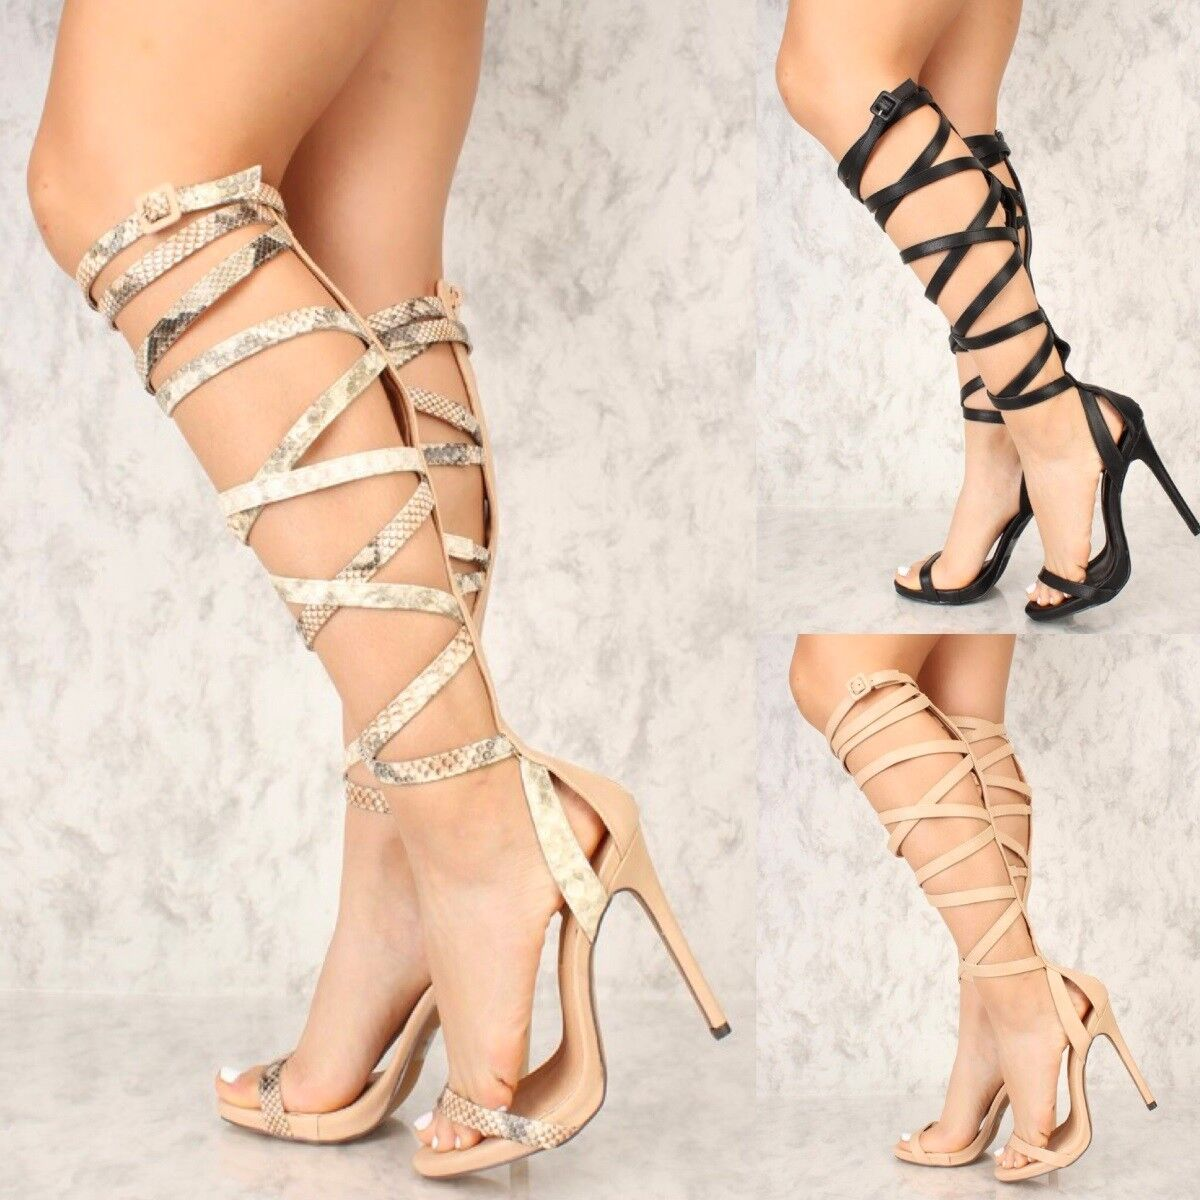 Sexy Strappy Mid Calf Knee High Sandals Gladiator Stiletto Heel Pumps Sandals High Shoes G32 ba649f